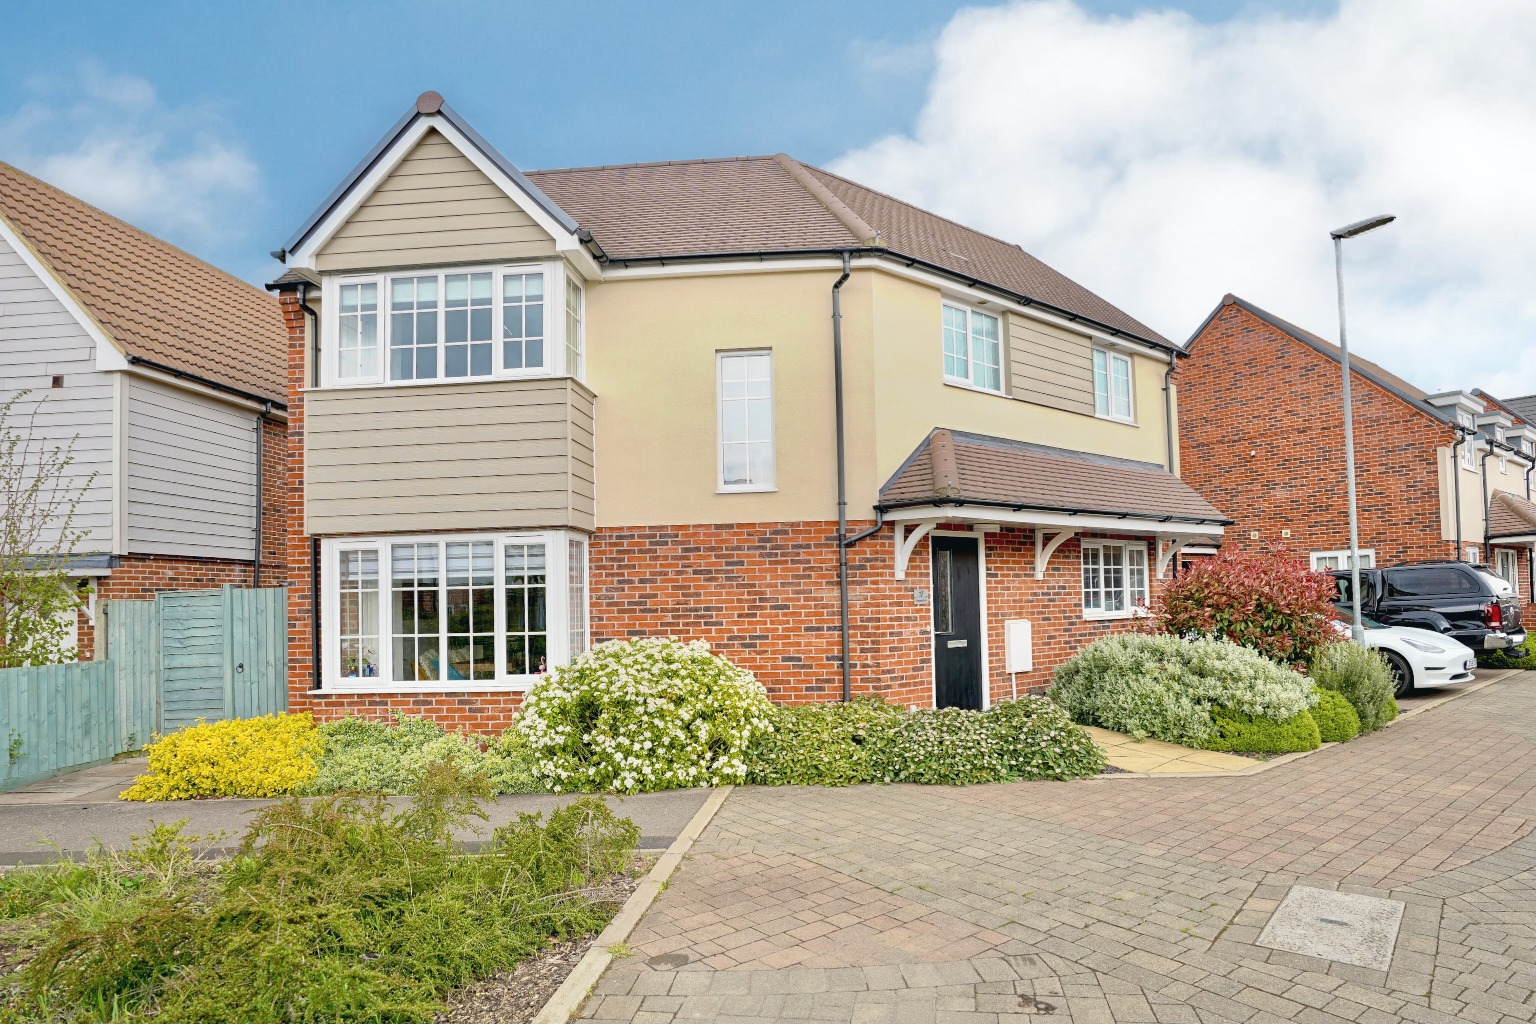 3 bed  for sale in Harvest Drive, St. Neots, PE19